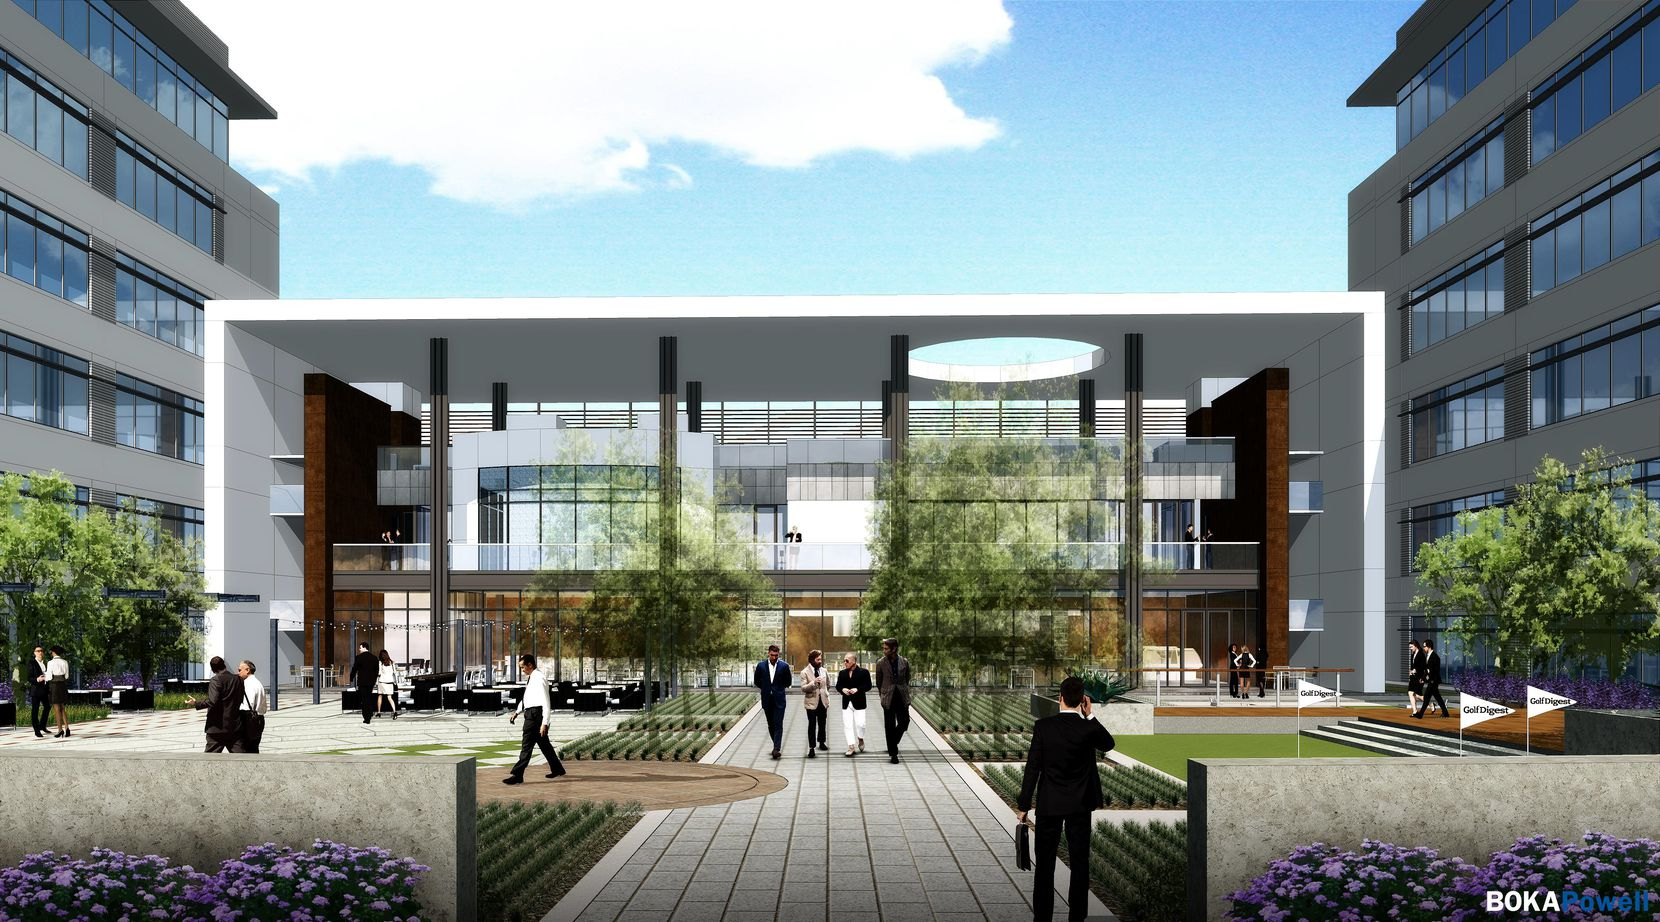 The campus will have a 3-story amenity building and courtyard.